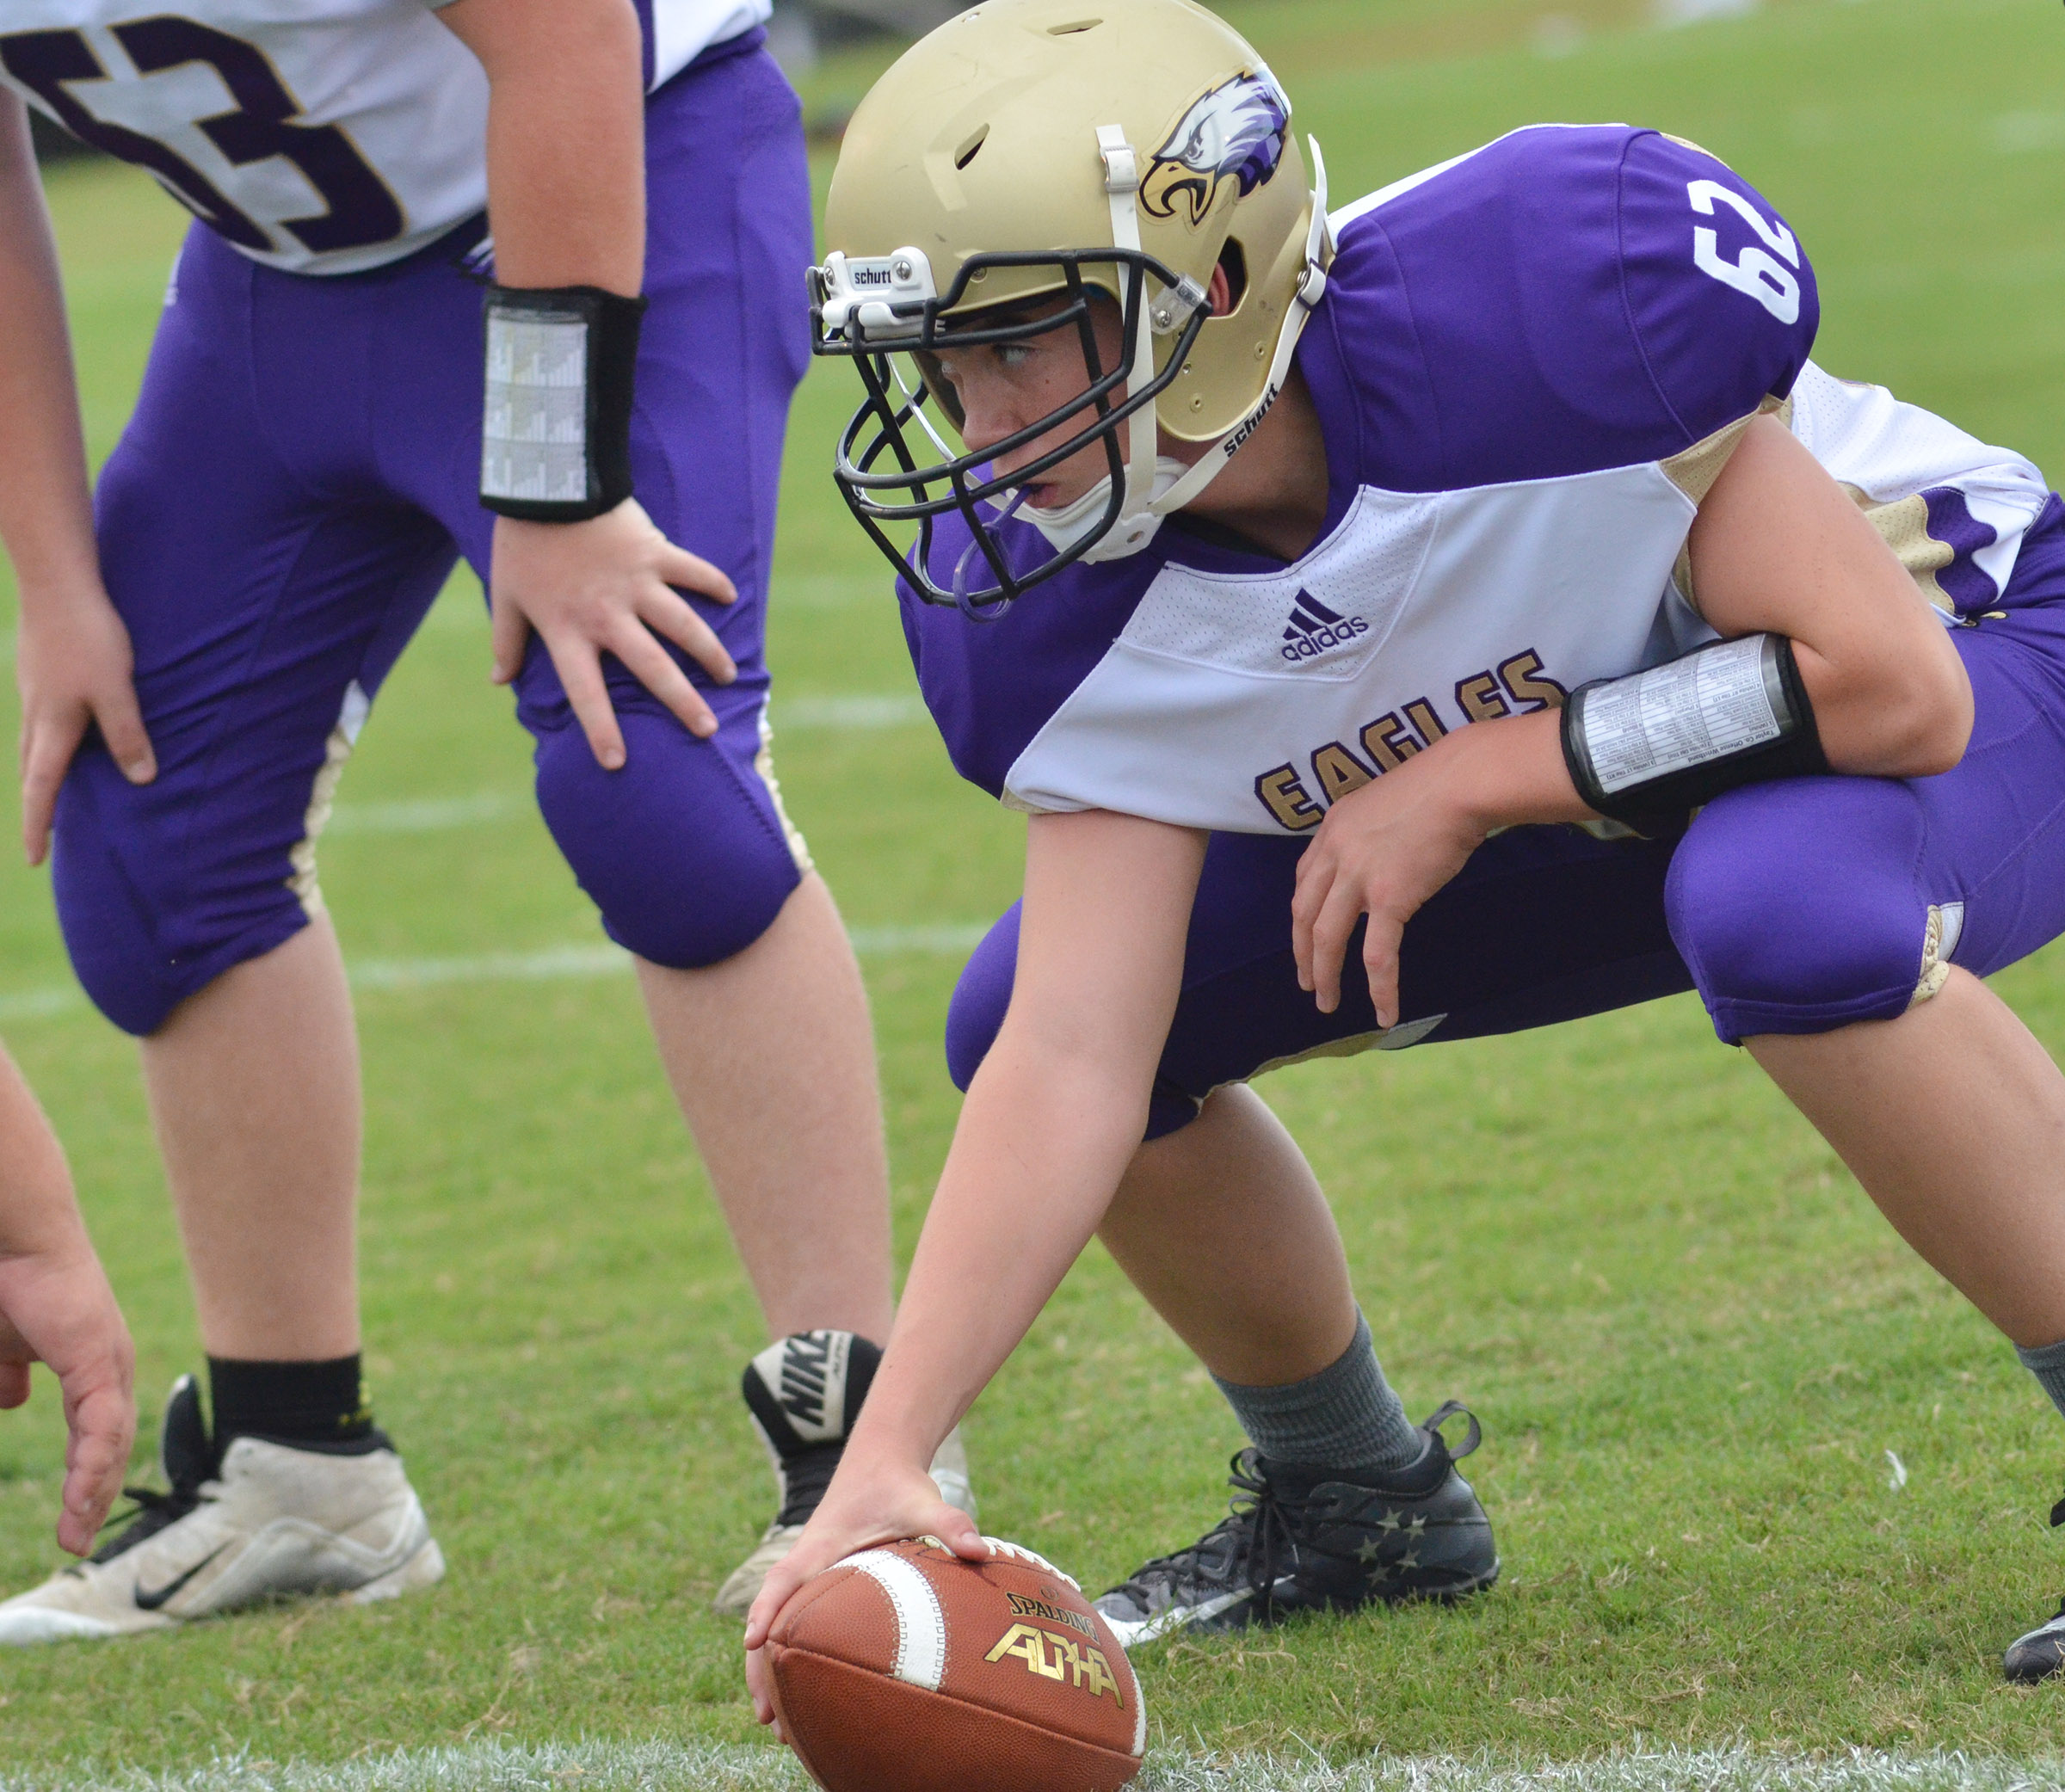 CHS sophomore Cole Kidwell snaps the ball.